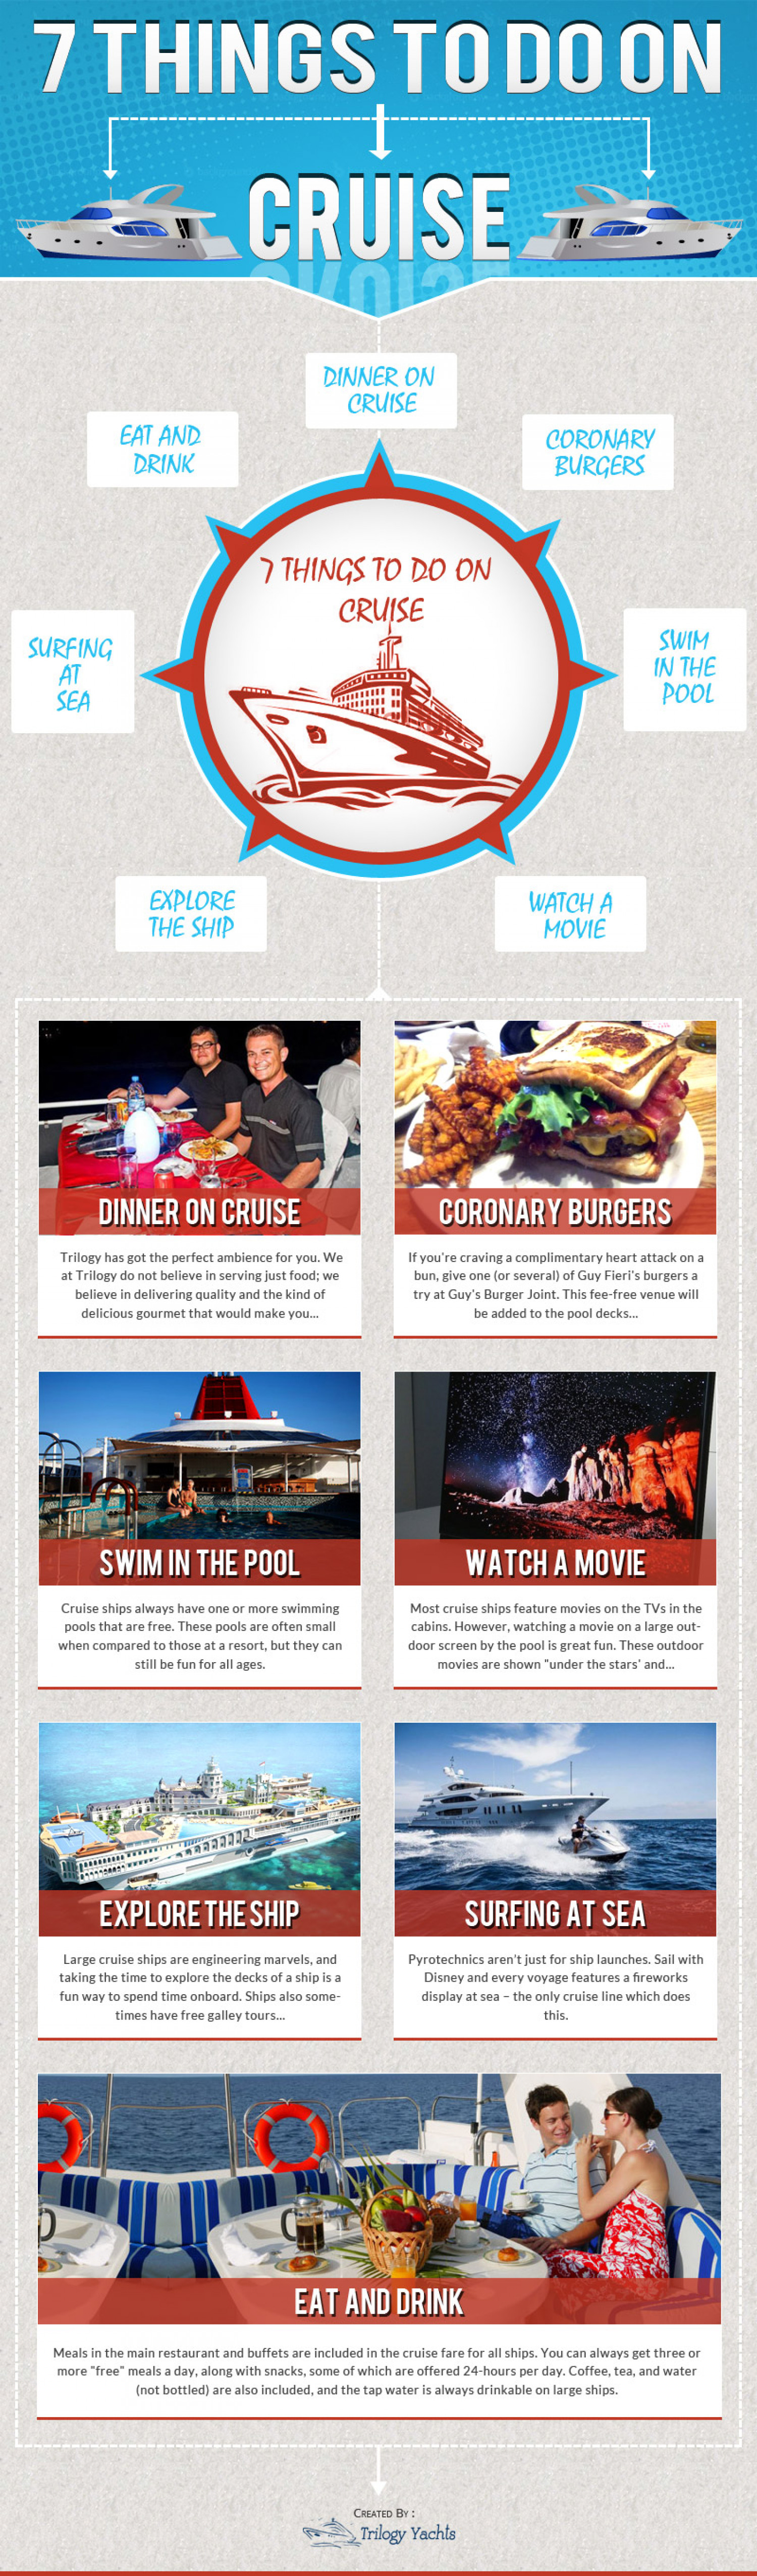 7 must do things on Cruise Infographic